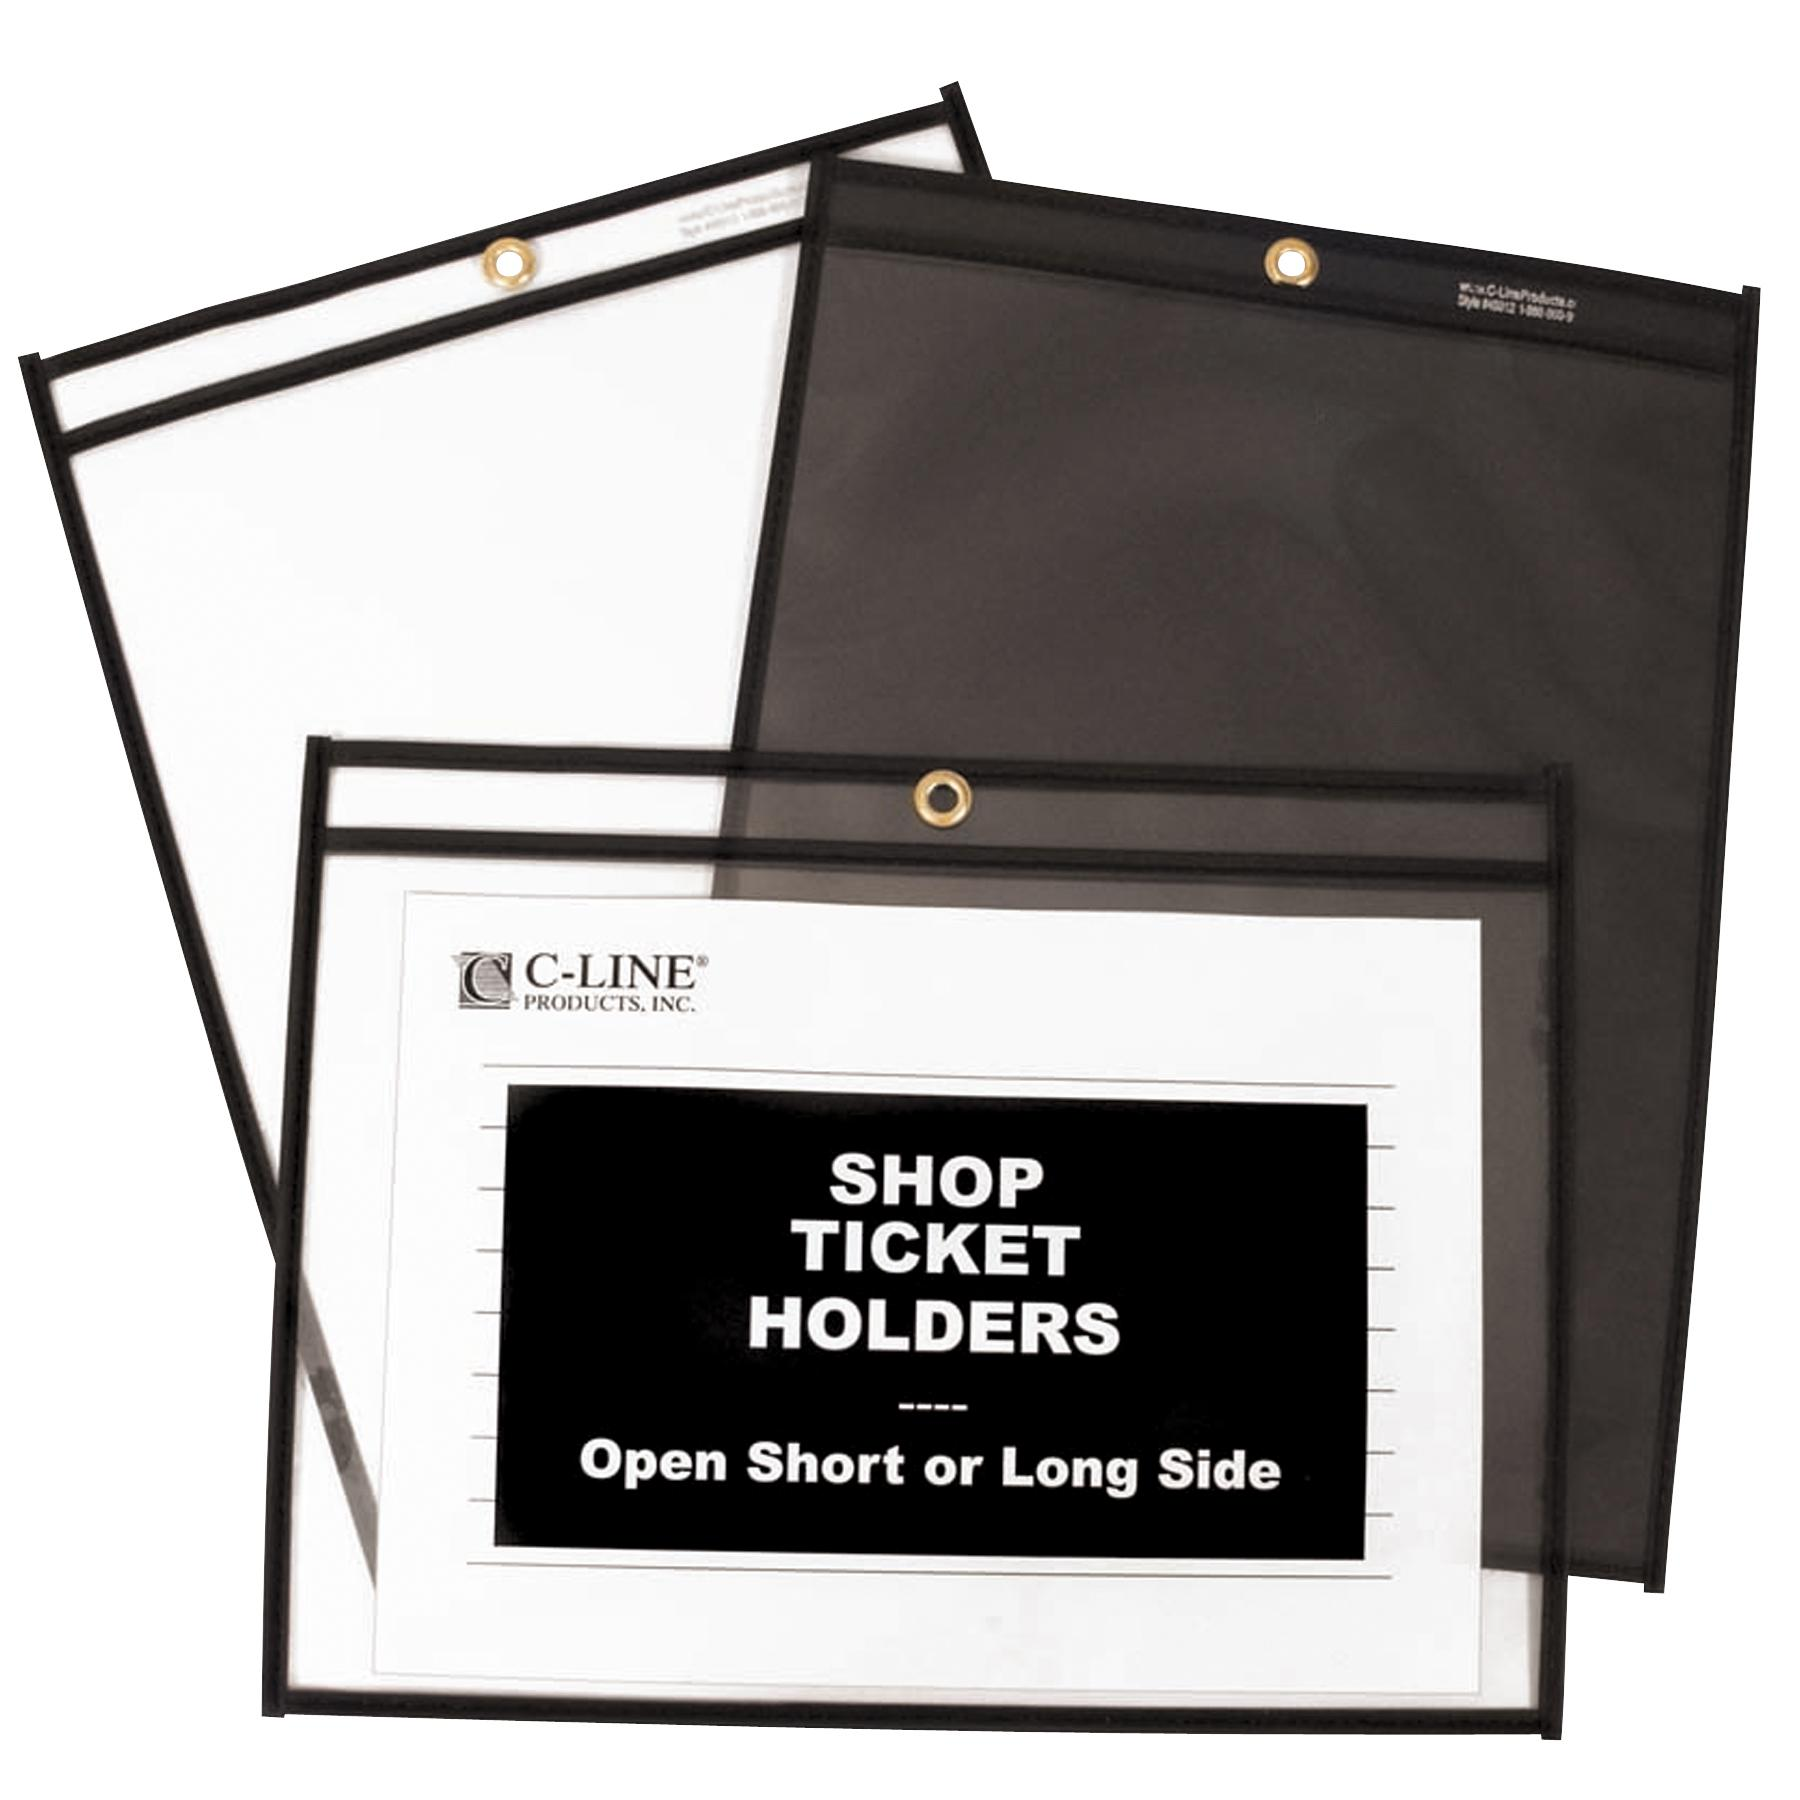 c line stitched dual pocket shop ticket holder with hanging strap both sides 38944389127 ebay. Black Bedroom Furniture Sets. Home Design Ideas